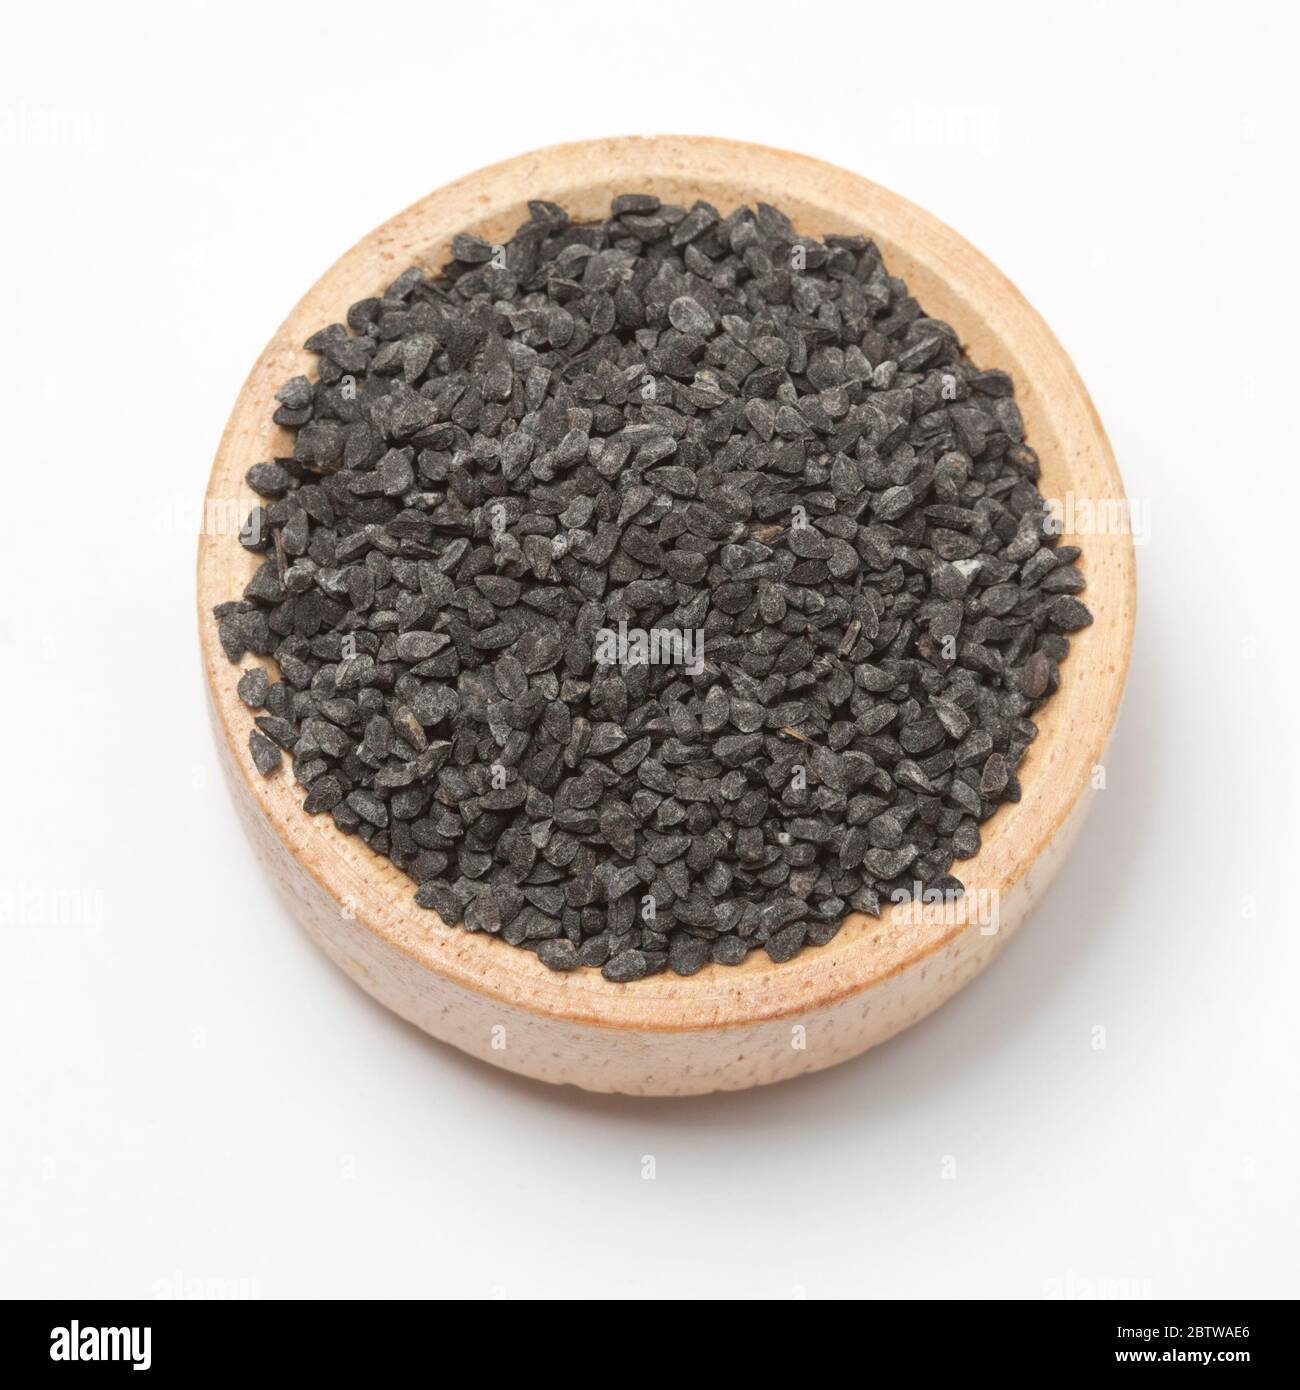 Close-up view of raw black cumins in a small wooden bowl on white background. Stock Photo